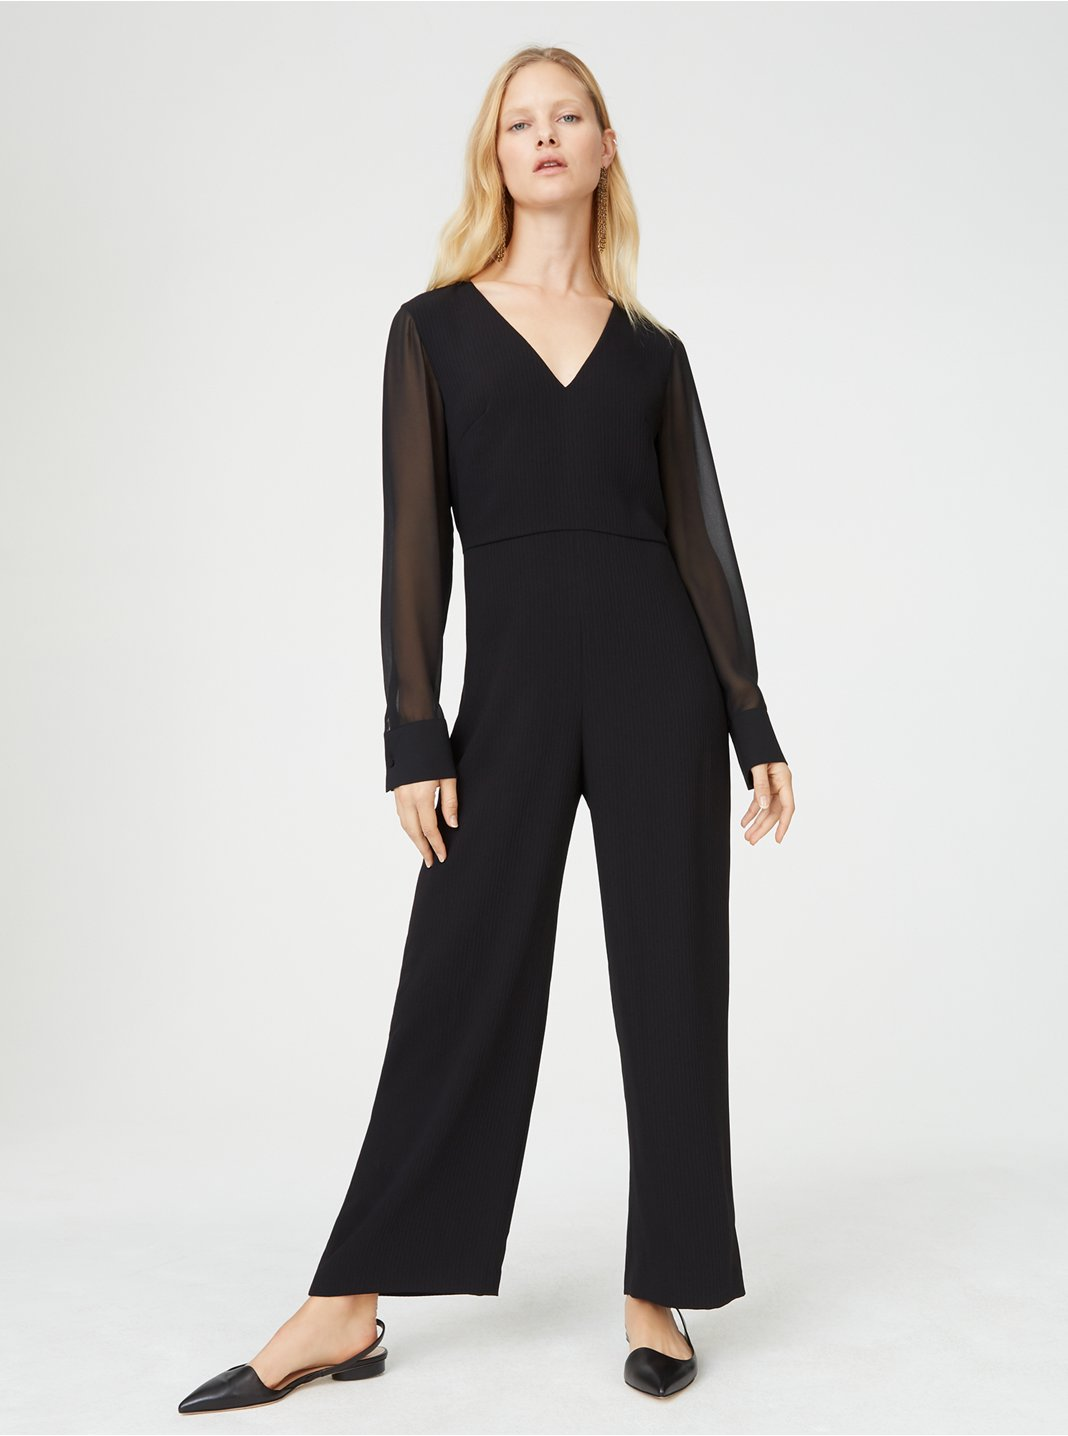 클럽 모나코 Austeyah 점프수트 Club Monaco Austeyah Jumpsuit,Black